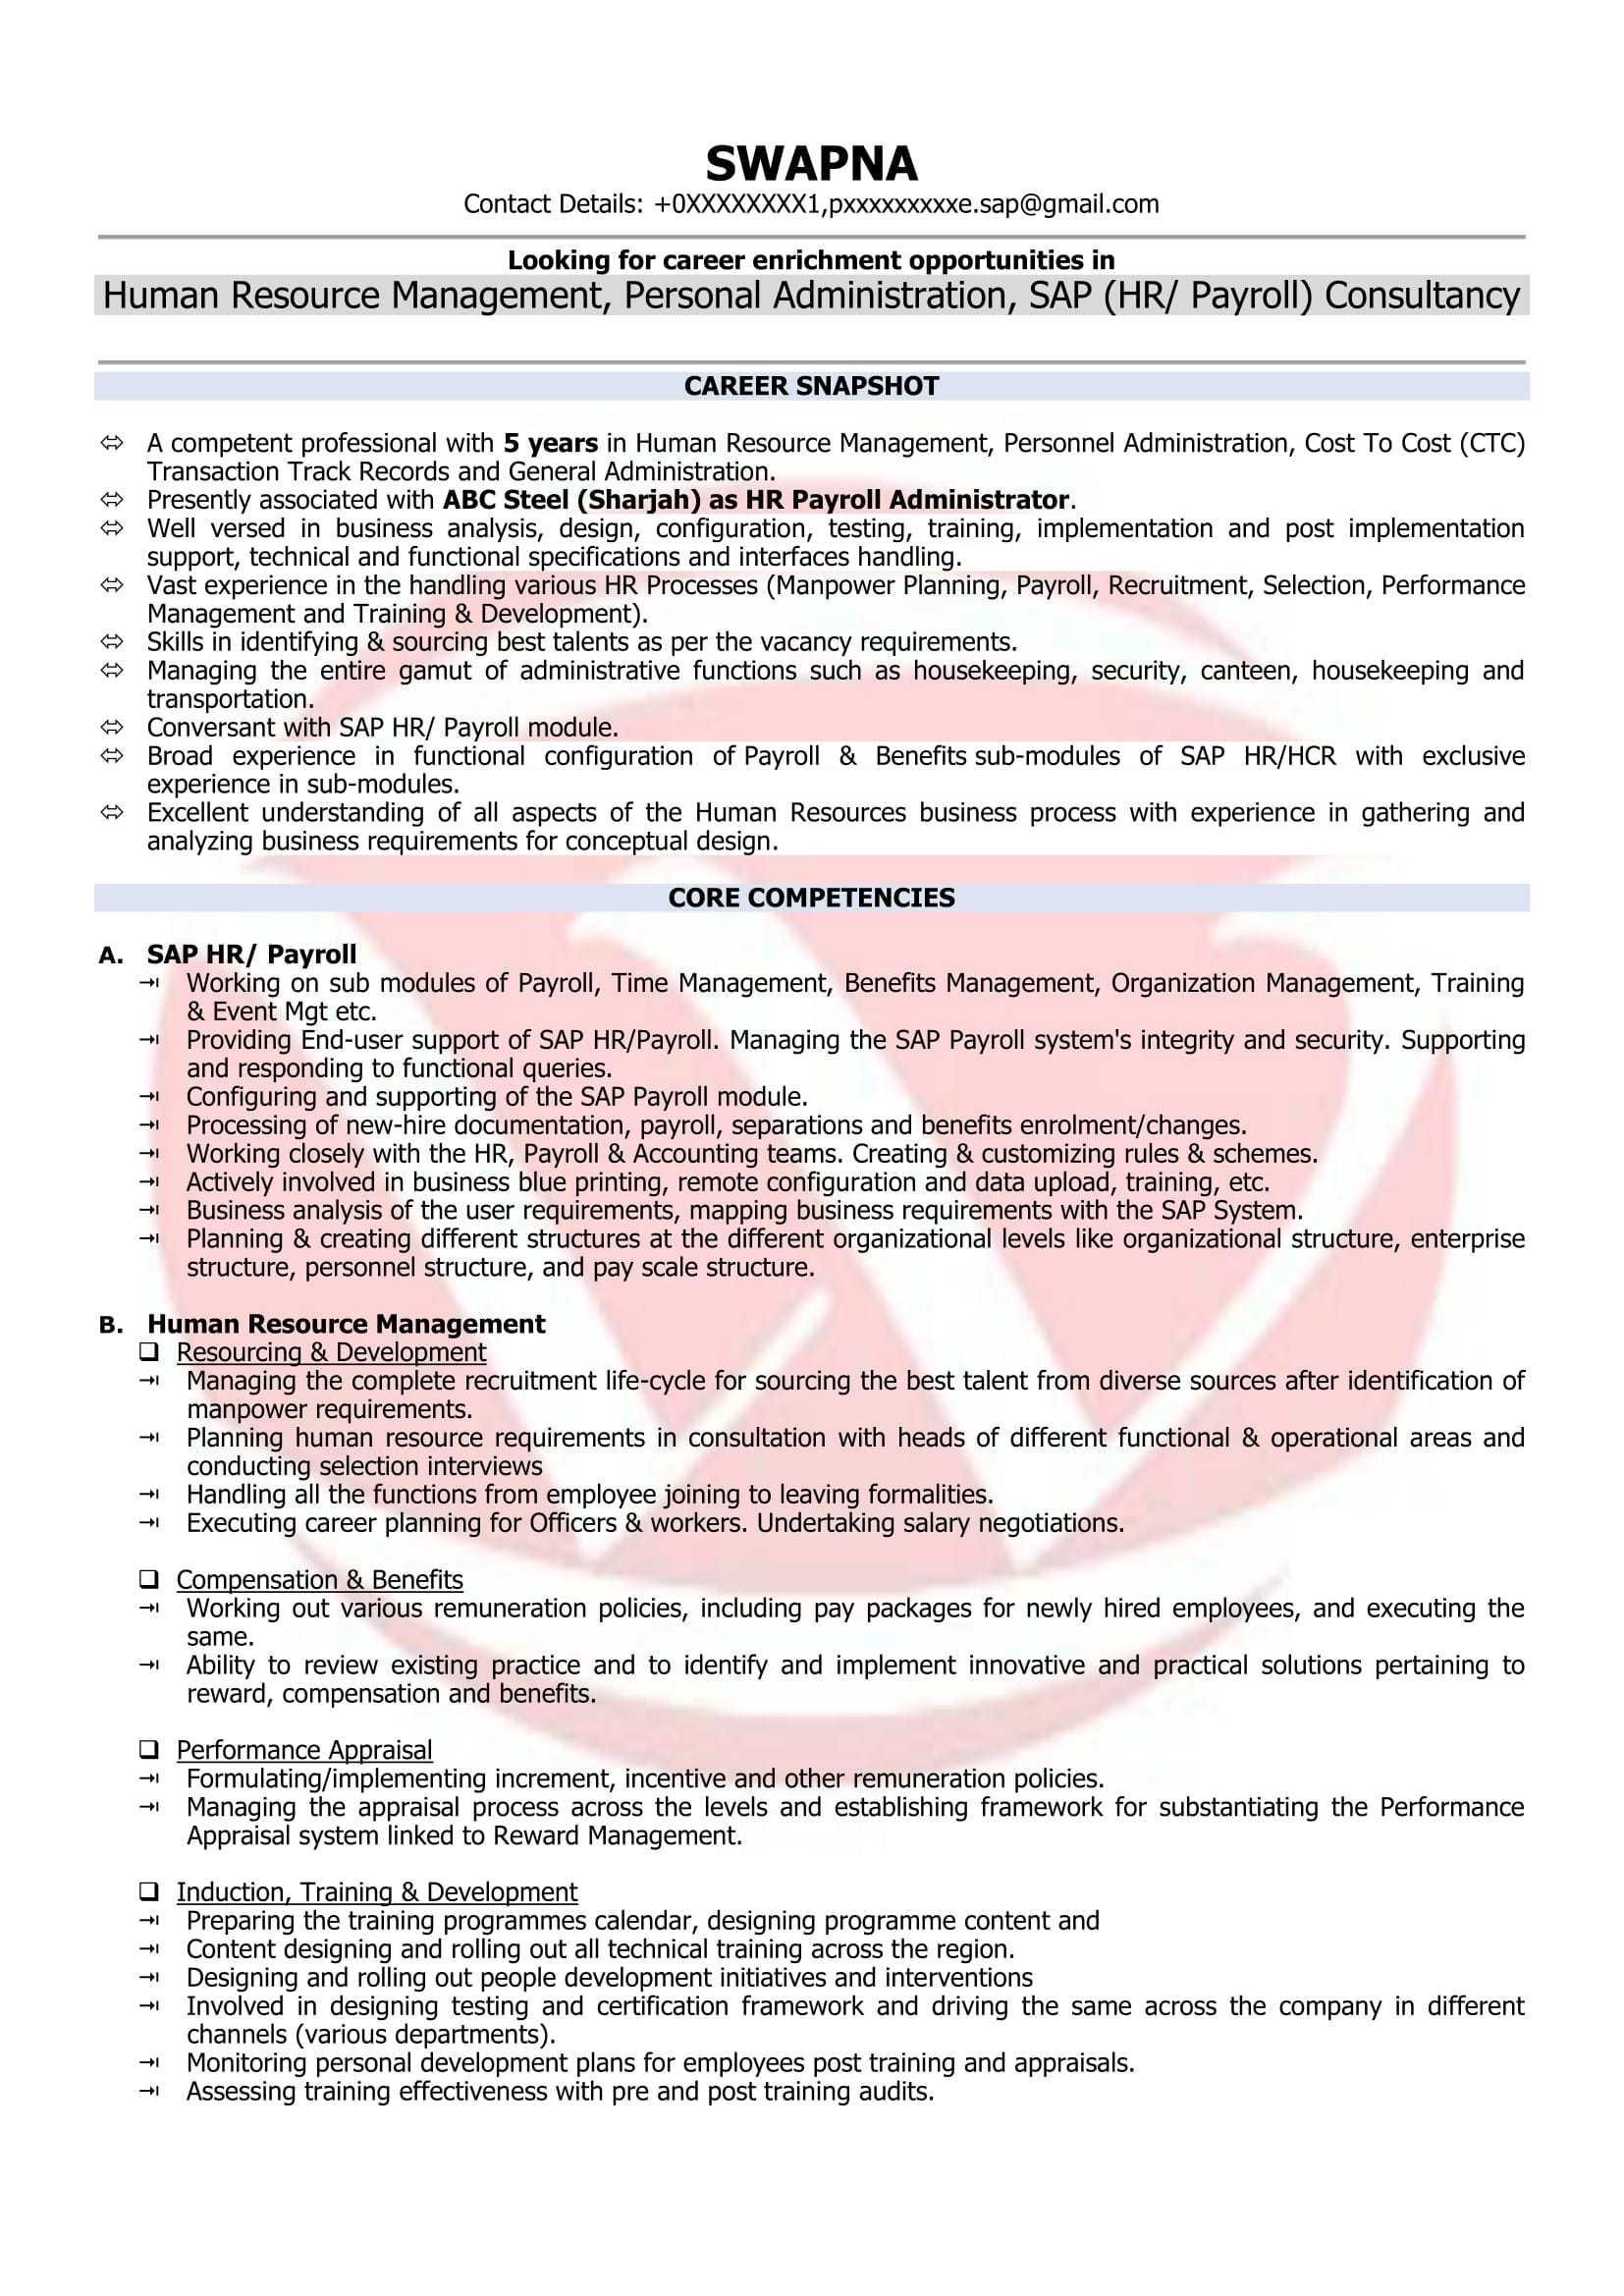 hr executive sample resume - Sap Administration Sample Resume